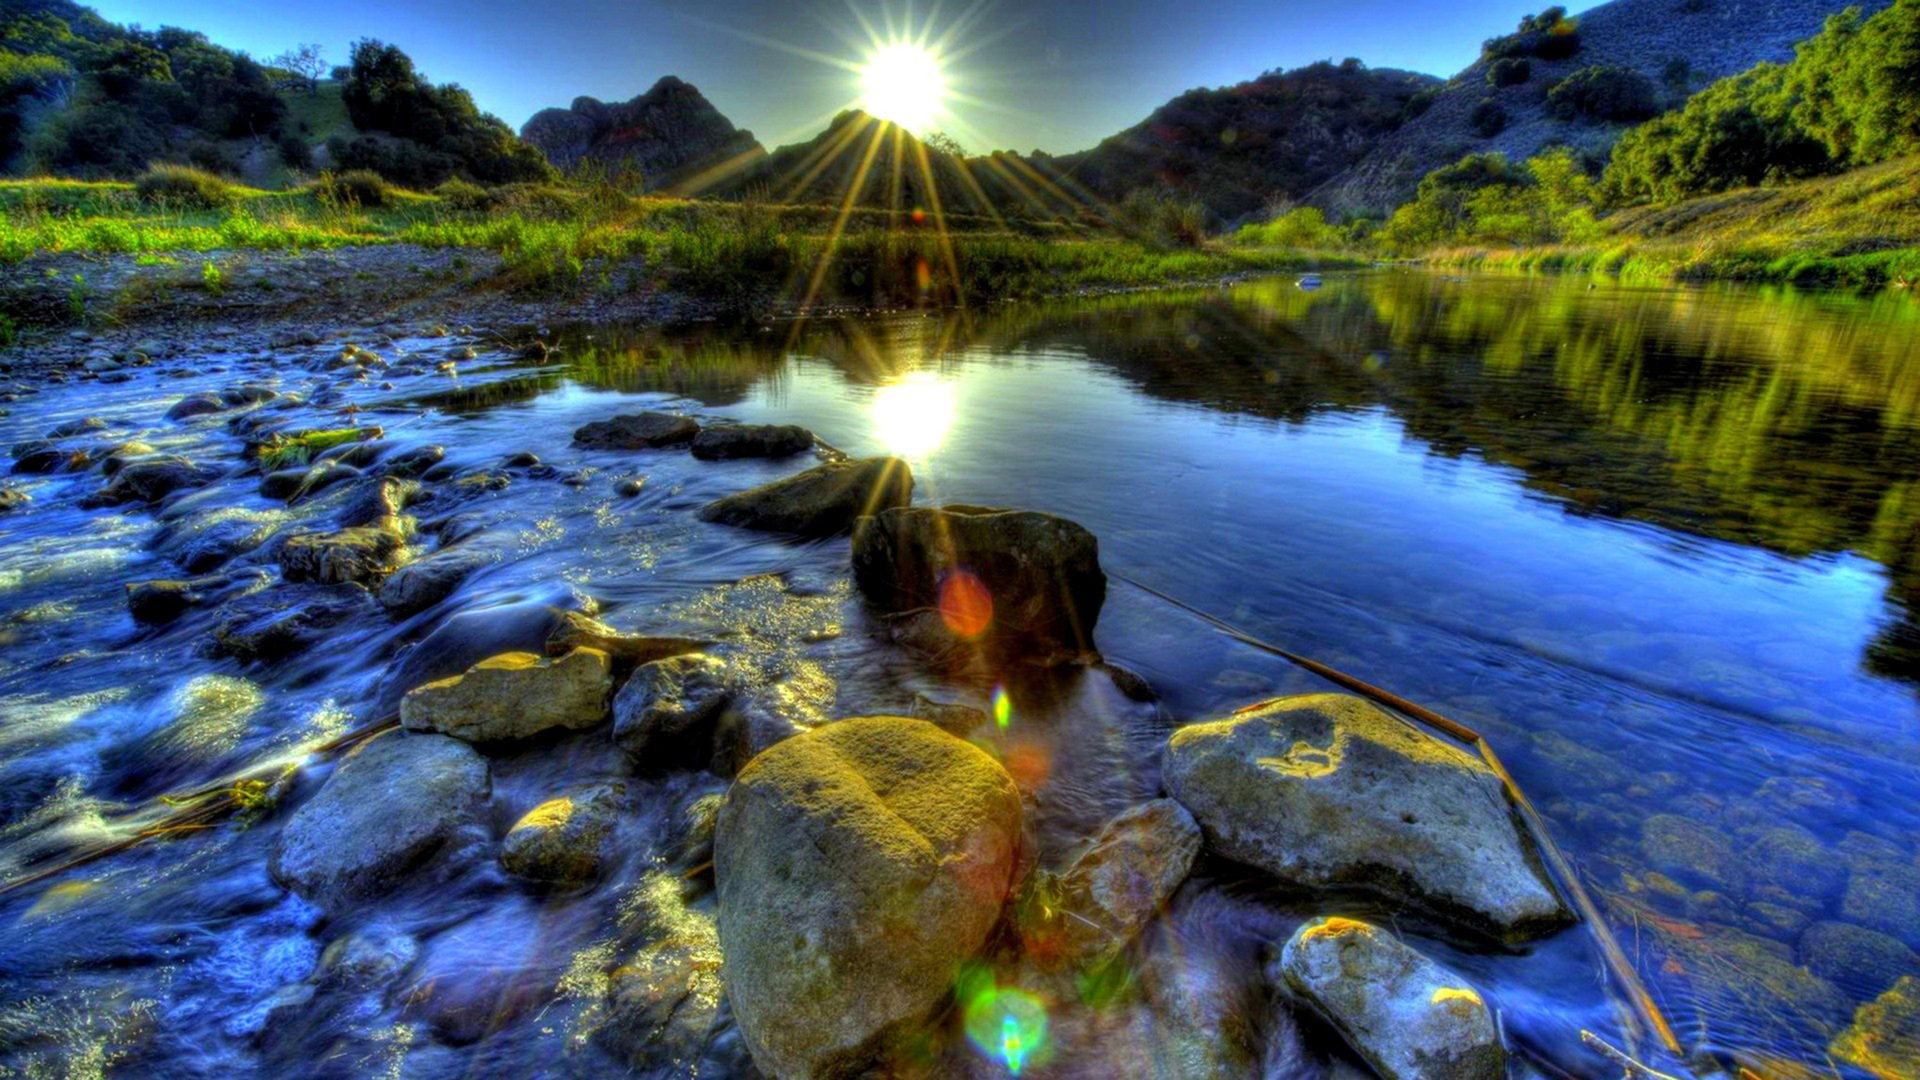 Windows 10 Fall Usa Wallpapers 4k River Stones Background Sunset Hdr 1920x1080 Wallpaper